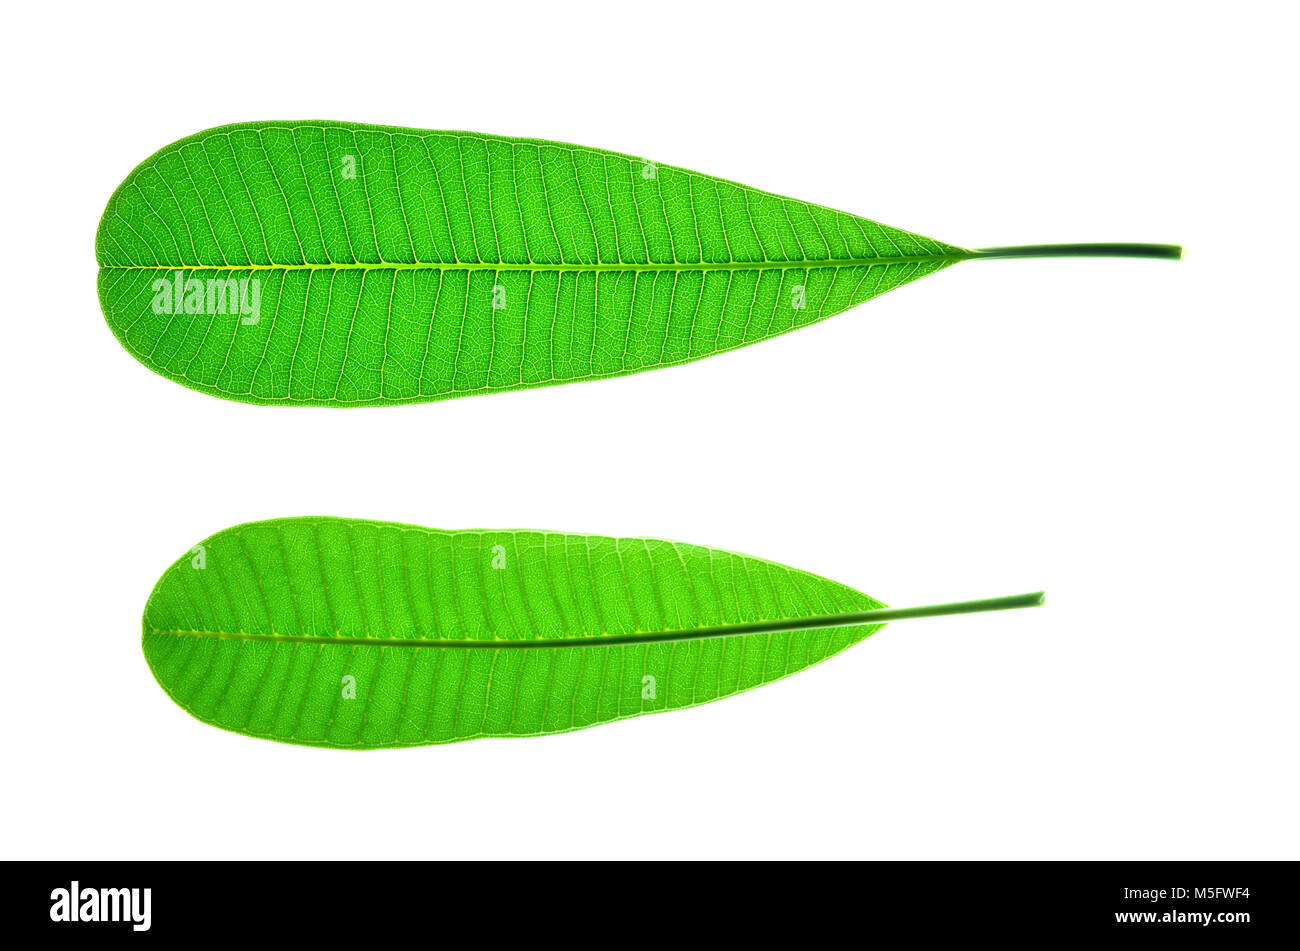 Isolate frangipani or plumeria  leaf, a close up photo of frangipani or plumeria leaf isolate on white bright light Stock Photo